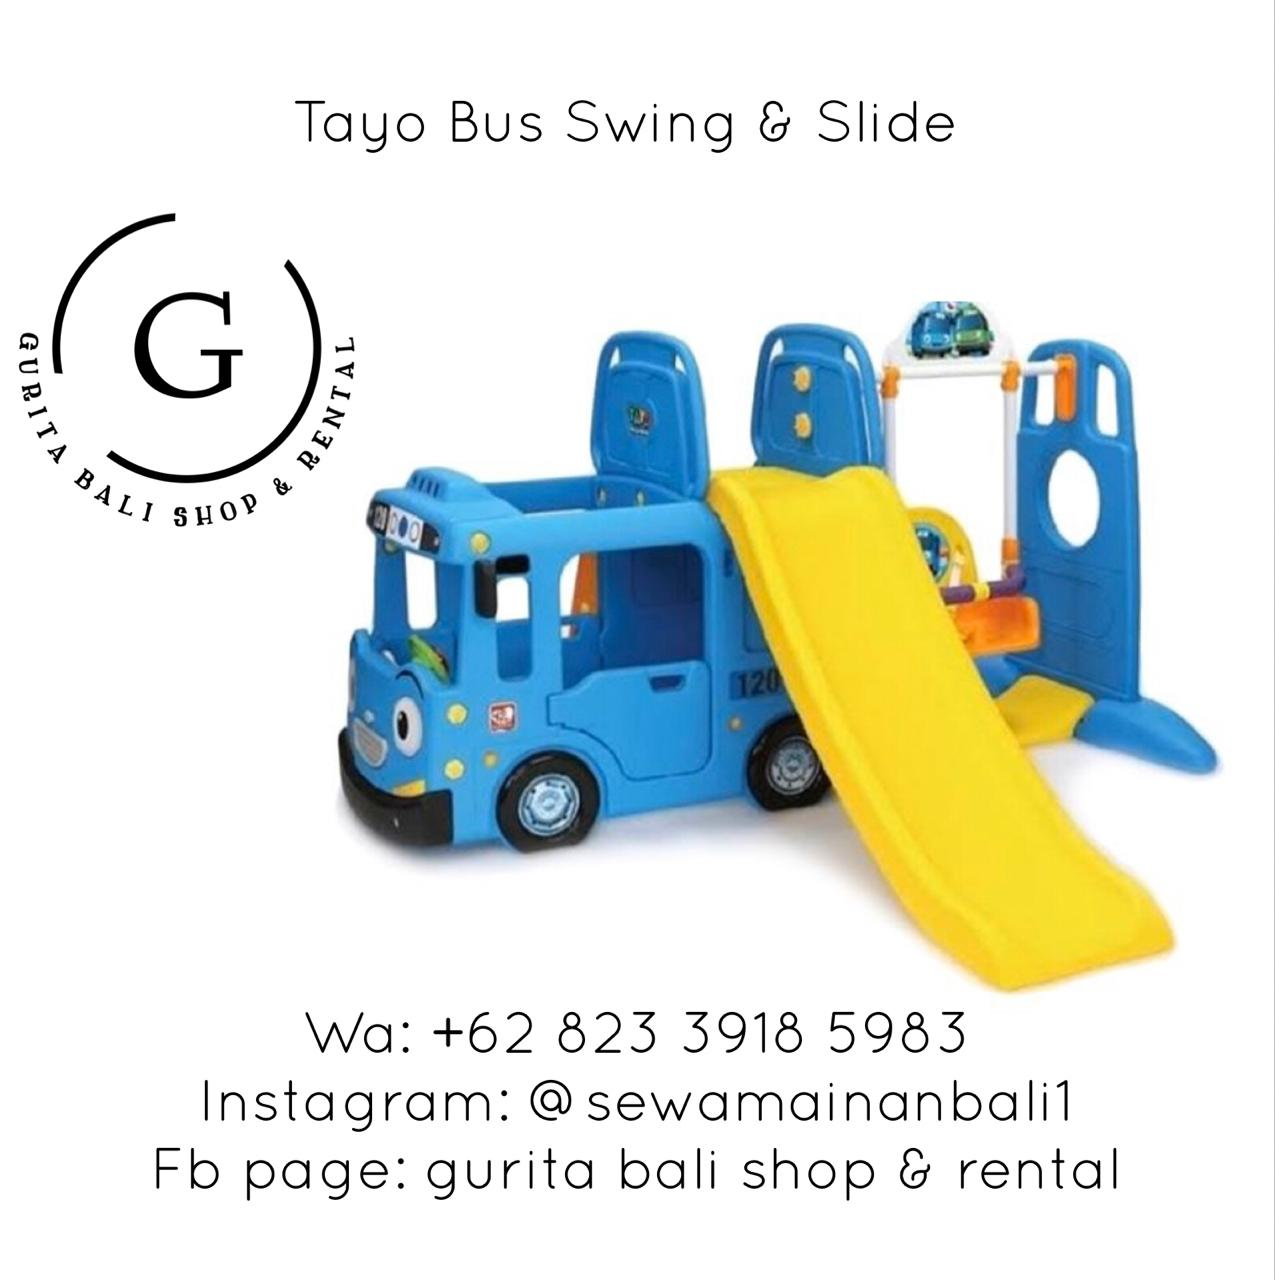 TAYO AND SLIDE ONLY